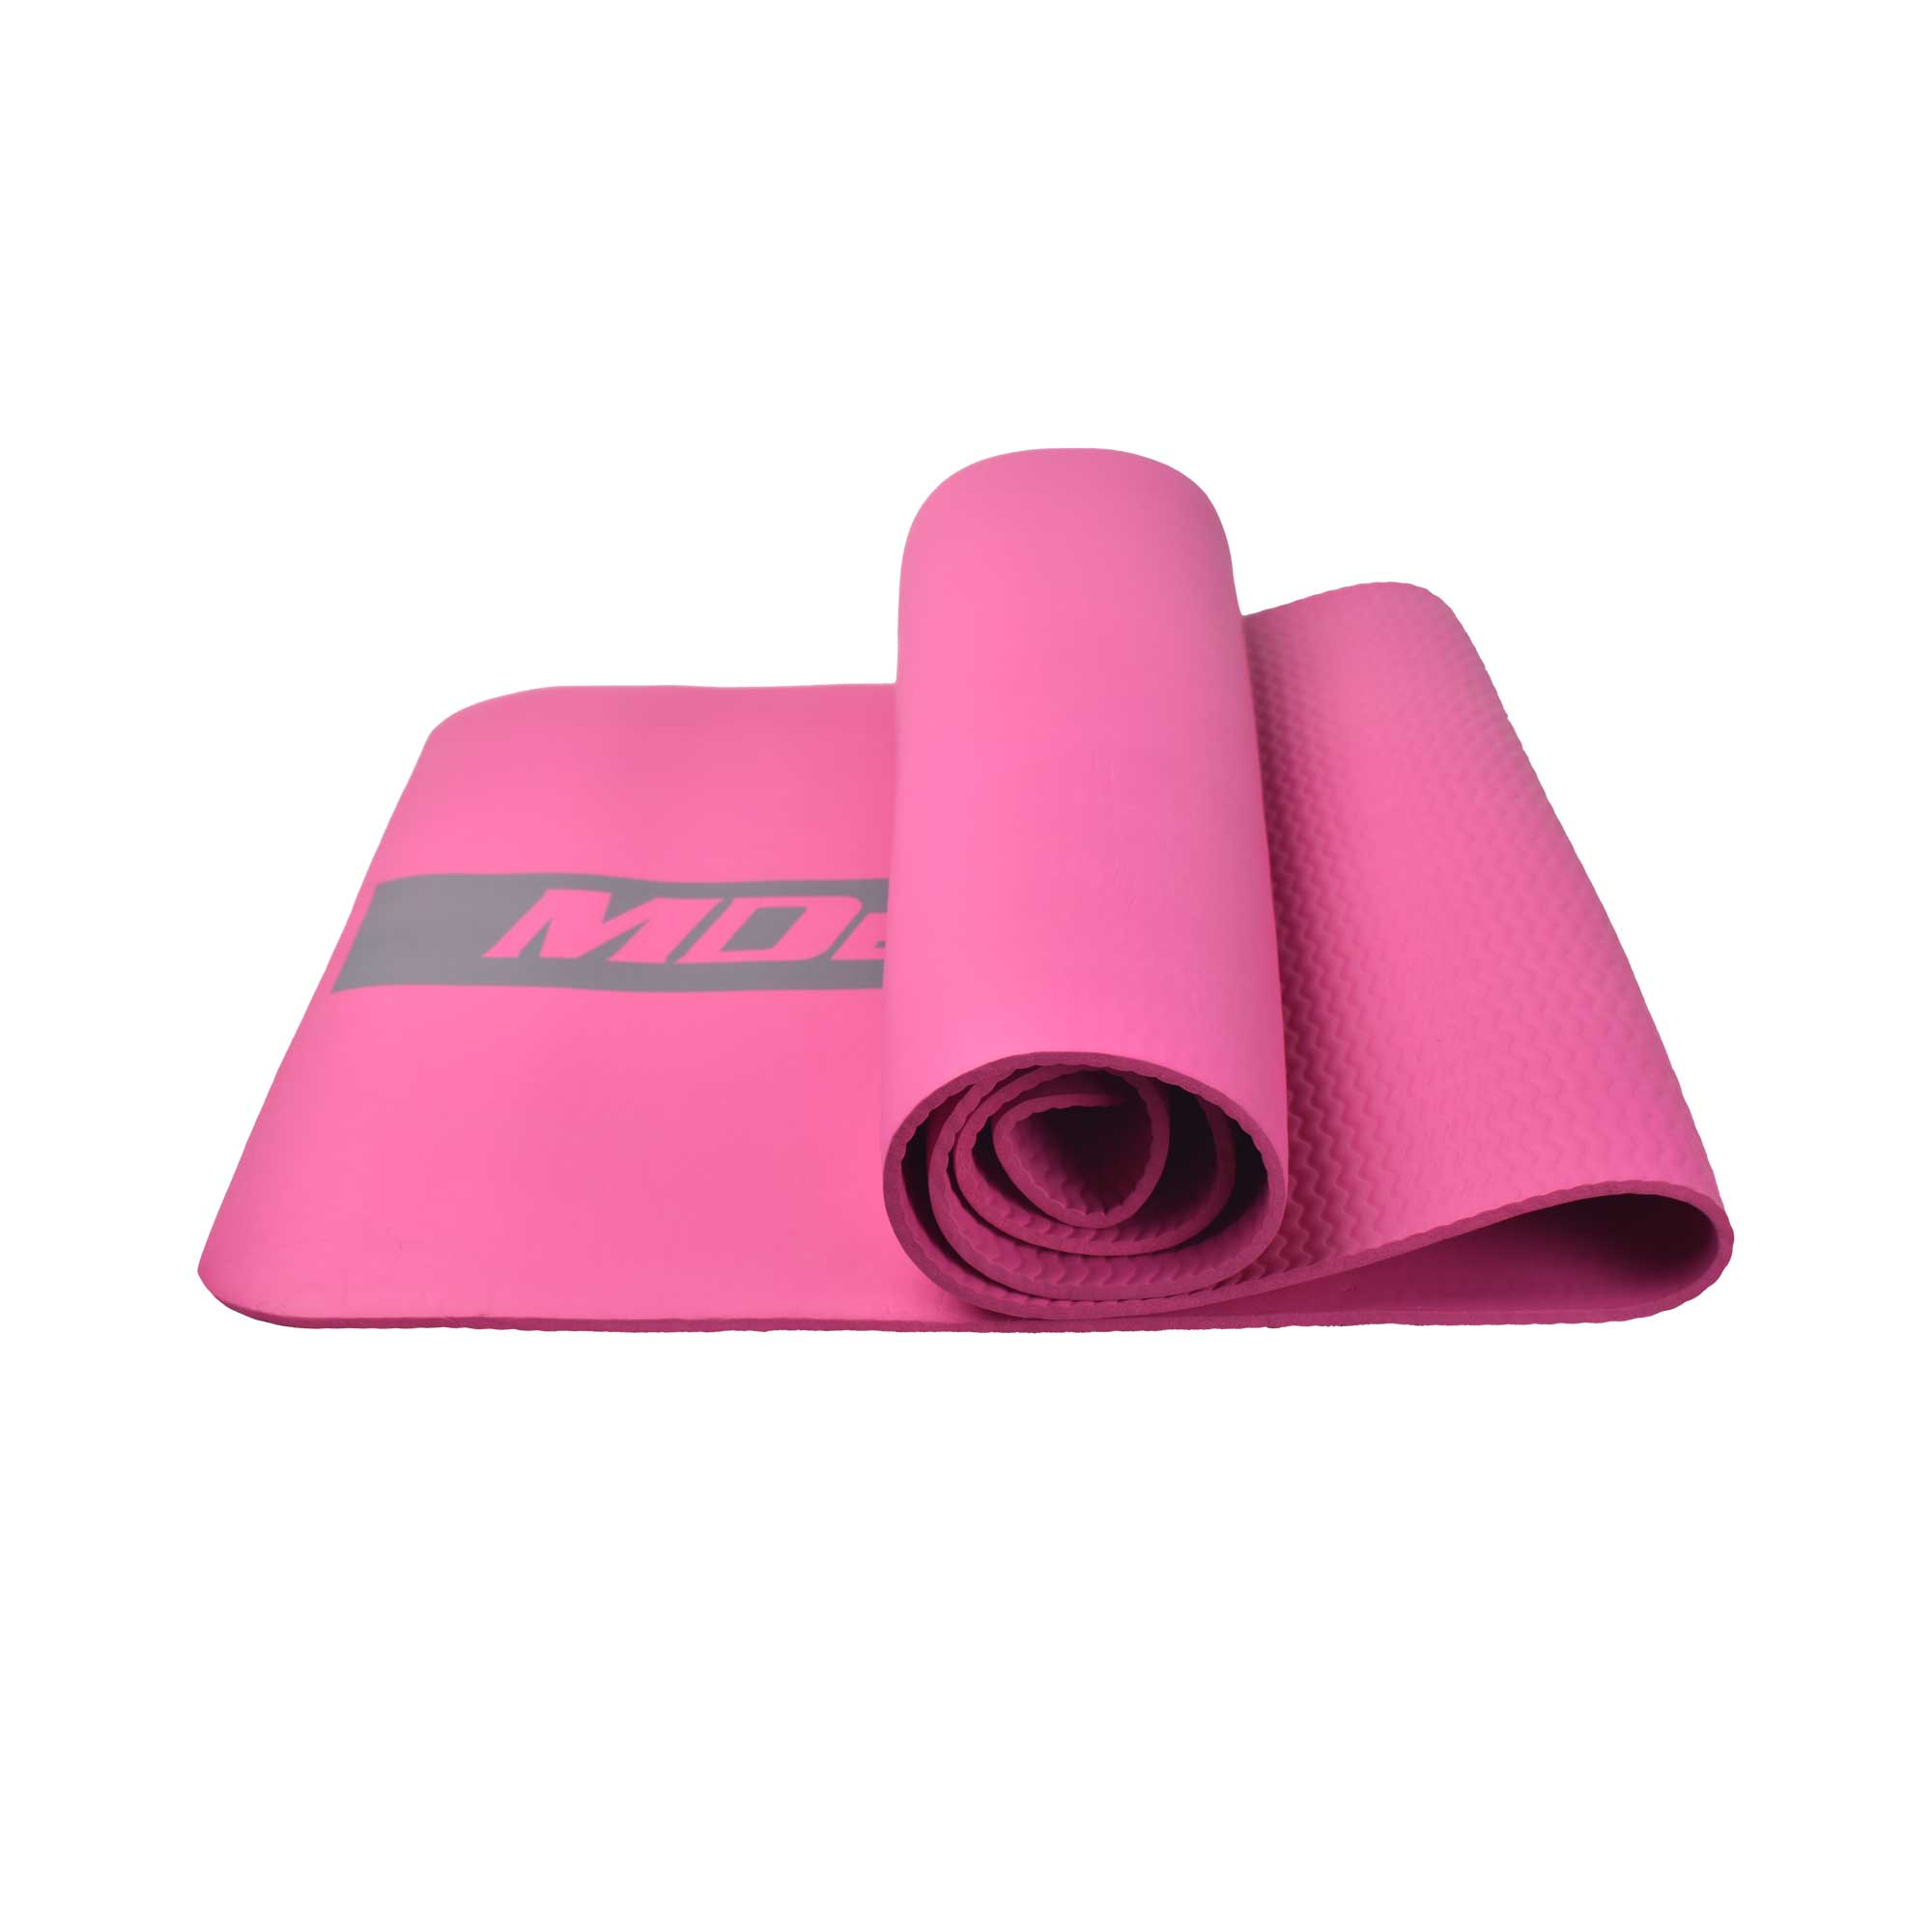 MDBUDDY MD9041 HIGH ELASTIC RUBBER PILATES YOGA MAT 6MM THICKNESS – RED ROSE